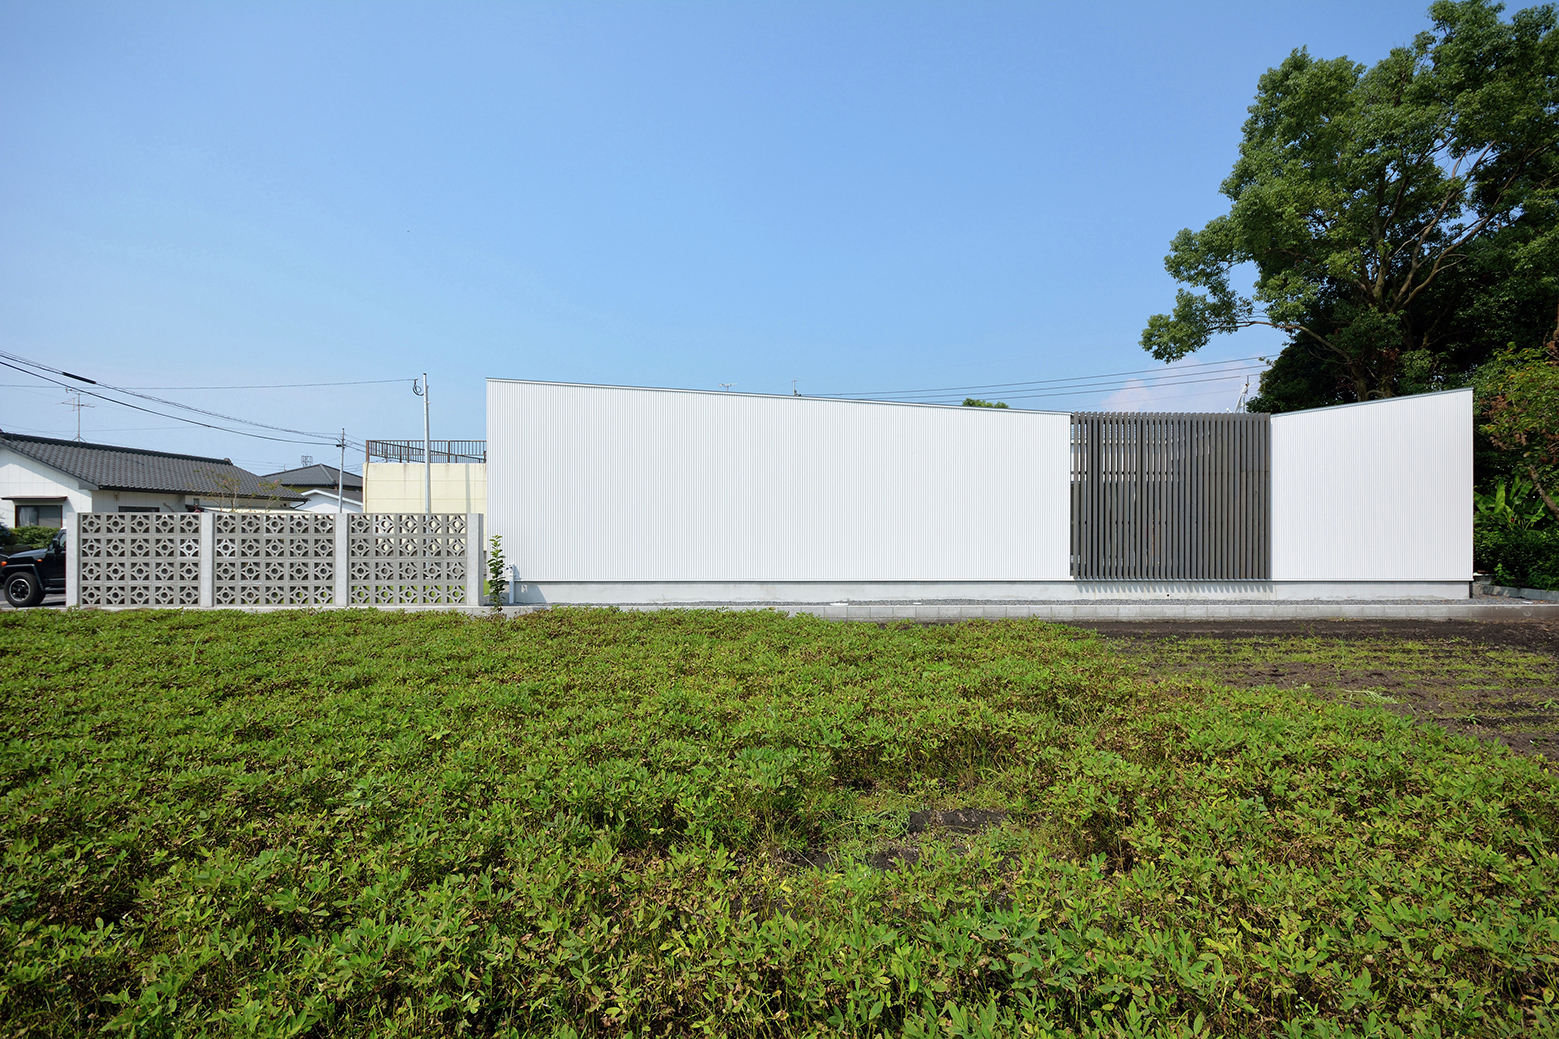 Gallery of terrace 2567 takeshi ishiodori architecture 1 for 1 the terrace